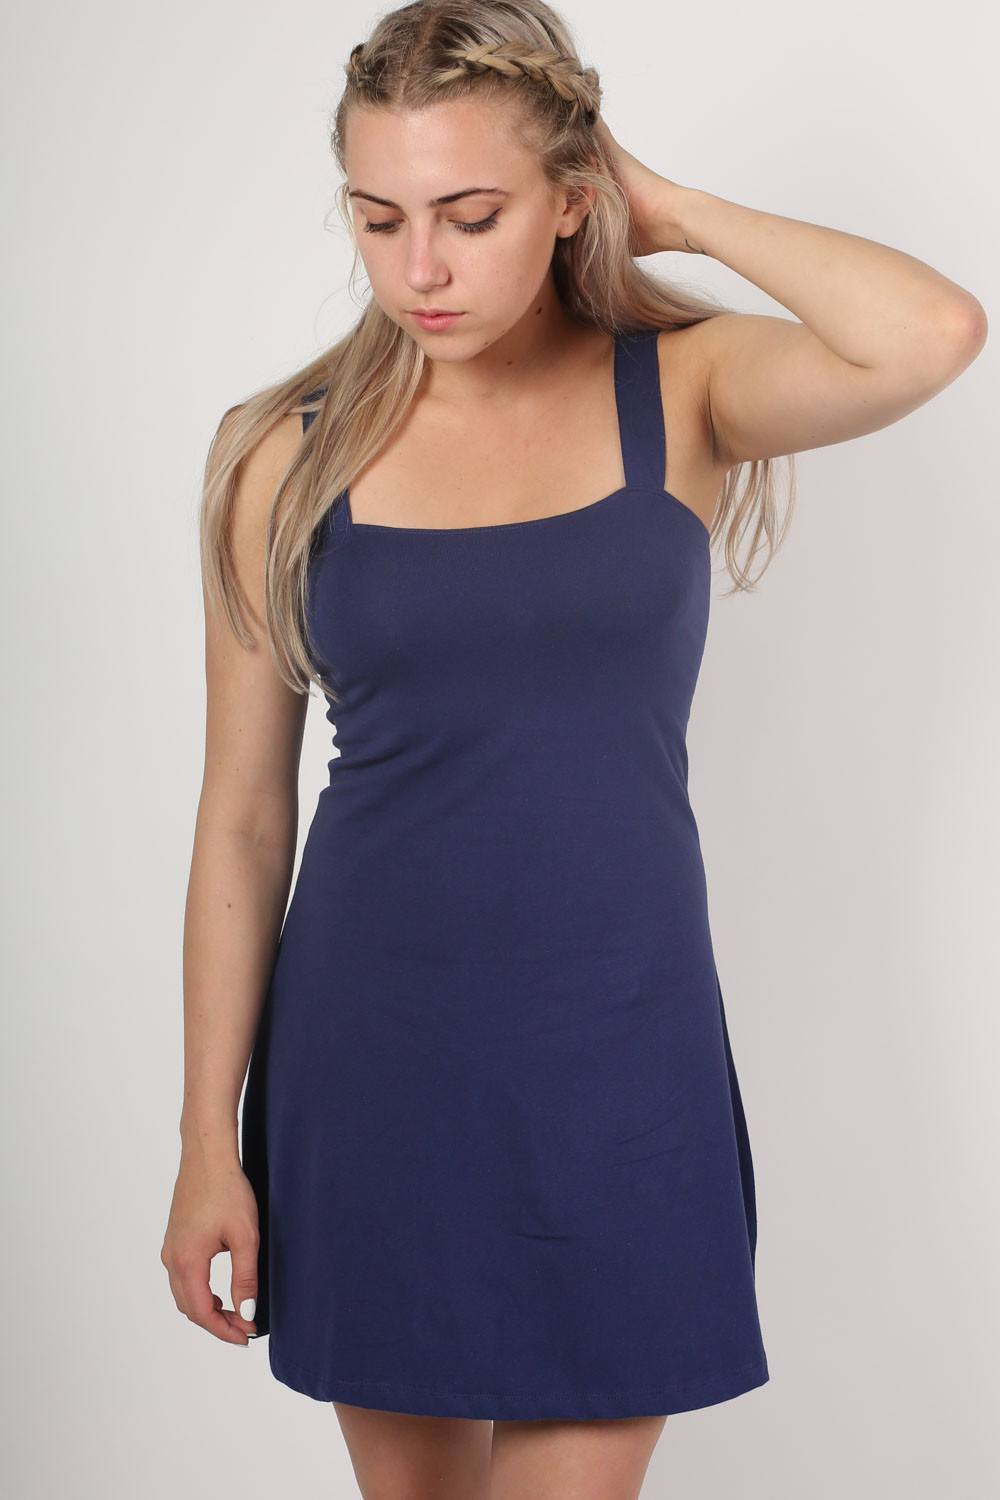 Strappy Skater Dress in Navy Blue 0